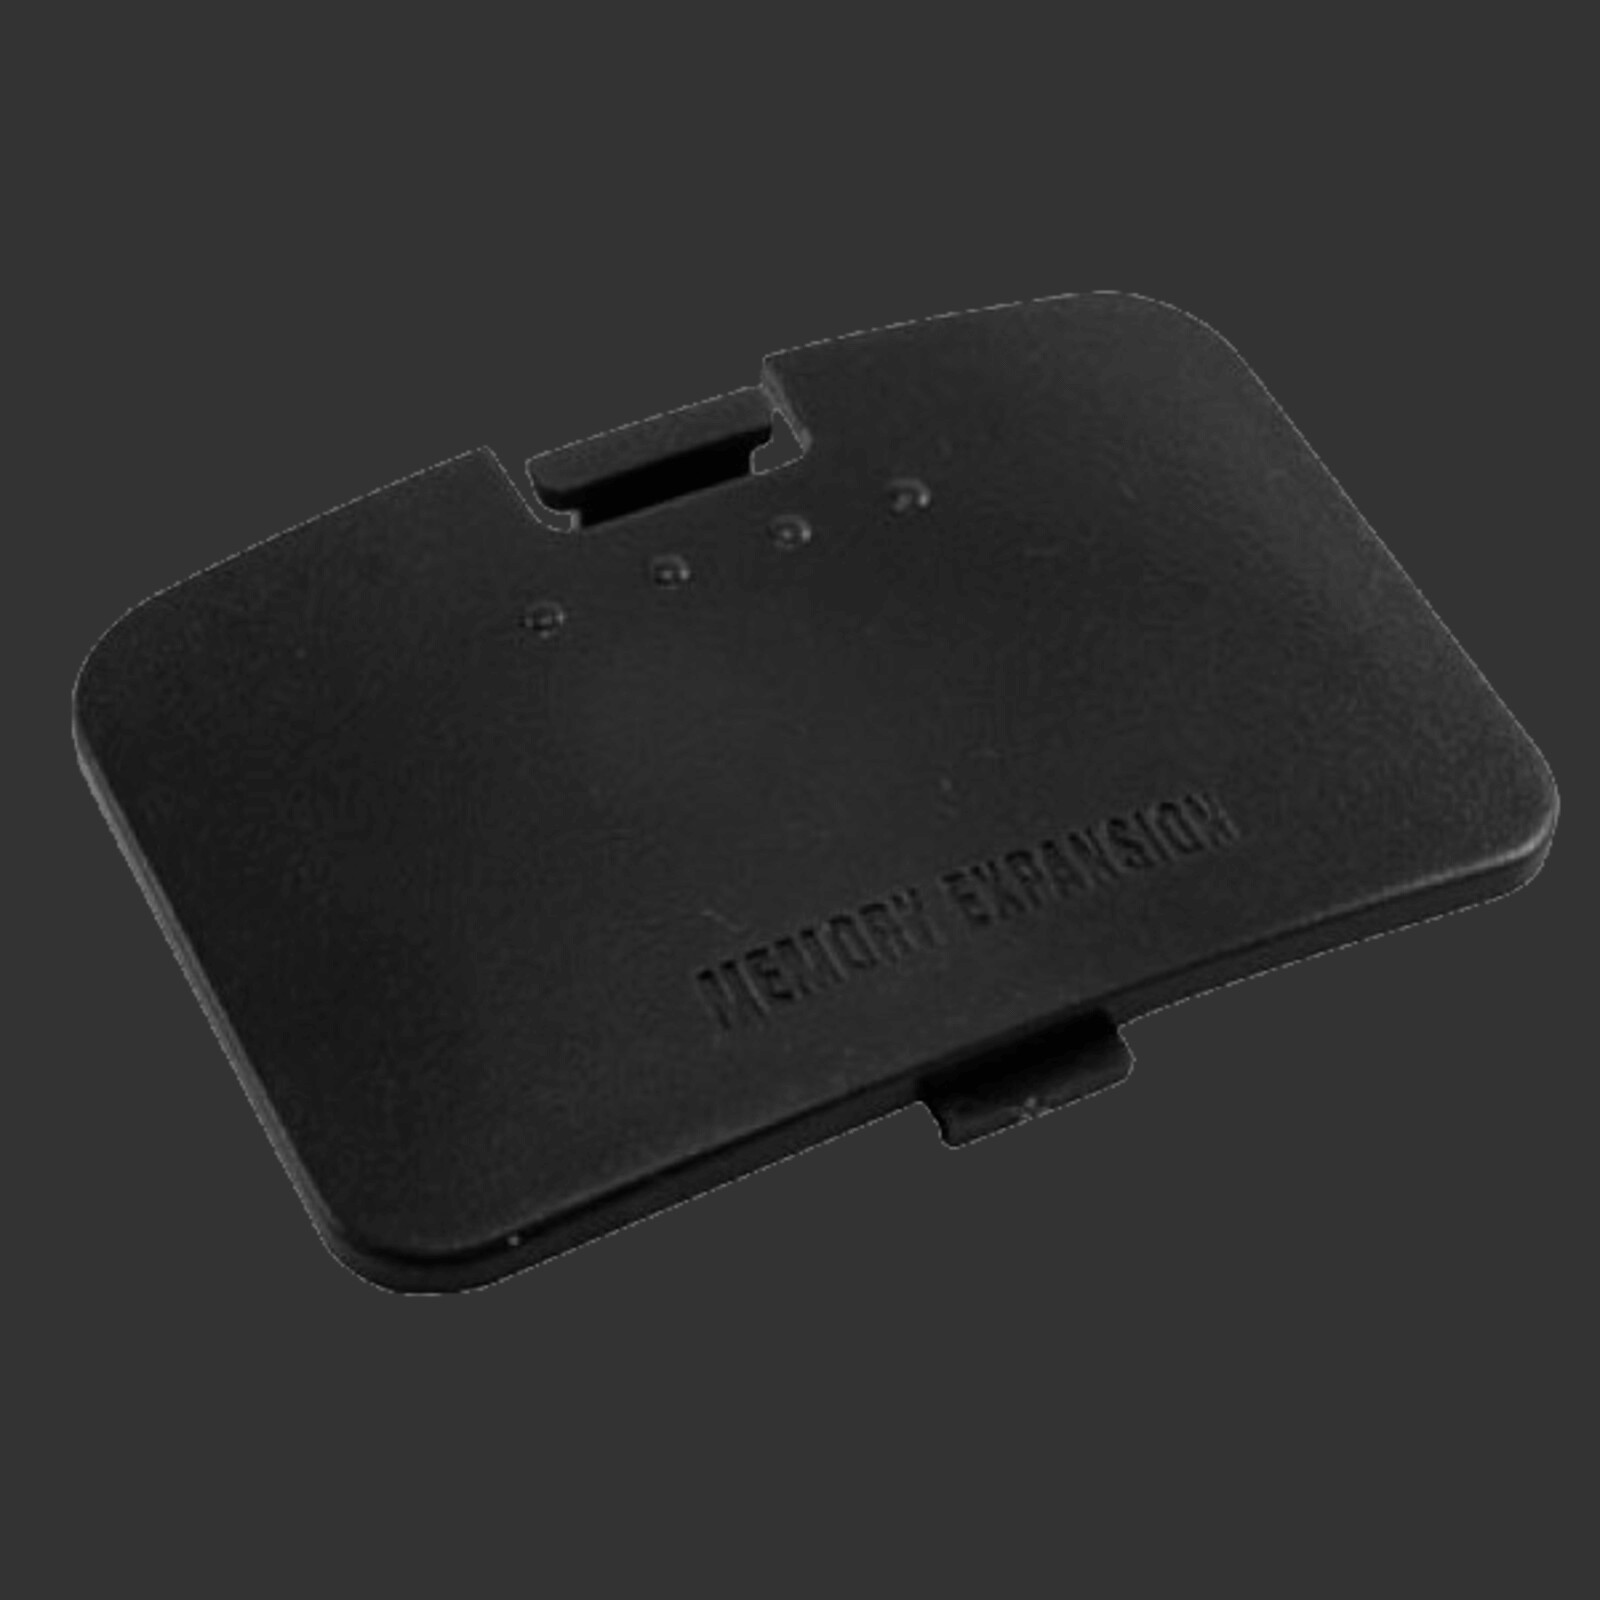 N64 Replacement Memory Expansion Cover